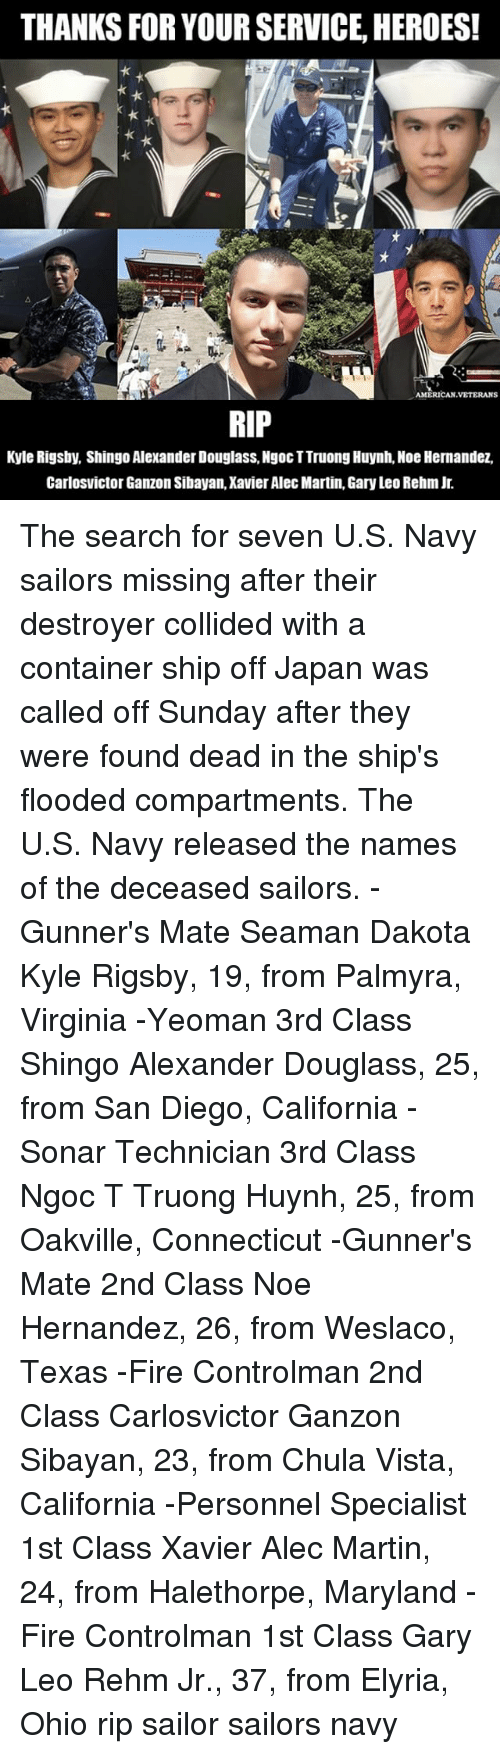 Fire, Martin, and Memes: THANKS FOR YOUR SERVICE, HEROES!  AMERICAN VETERAN  RIP  Kyle Rigsby, Shingo Alexander Douglass, Ngoc TTruongHuynh, Noe Hernandez,  Carlos Victor Ganzon Sibayan,Xavier Alec Martin, Gary Leo Rehm Jr. The search for seven U.S. Navy sailors missing after their destroyer collided with a container ship off Japan was called off Sunday after they were found dead in the ship's flooded compartments. The U.S. Navy released the names of the deceased sailors. -Gunner's Mate Seaman Dakota Kyle Rigsby, 19, from Palmyra, Virginia -Yeoman 3rd Class Shingo Alexander Douglass, 25, from San Diego, California -Sonar Technician 3rd Class Ngoc T Truong Huynh, 25, from Oakville, Connecticut -Gunner's Mate 2nd Class Noe Hernandez, 26, from Weslaco, Texas -Fire Controlman 2nd Class Carlosvictor Ganzon Sibayan, 23, from Chula Vista, California -Personnel Specialist 1st Class Xavier Alec Martin, 24, from Halethorpe, Maryland -Fire Controlman 1st Class Gary Leo Rehm Jr., 37, from Elyria, Ohio rip sailor sailors navy